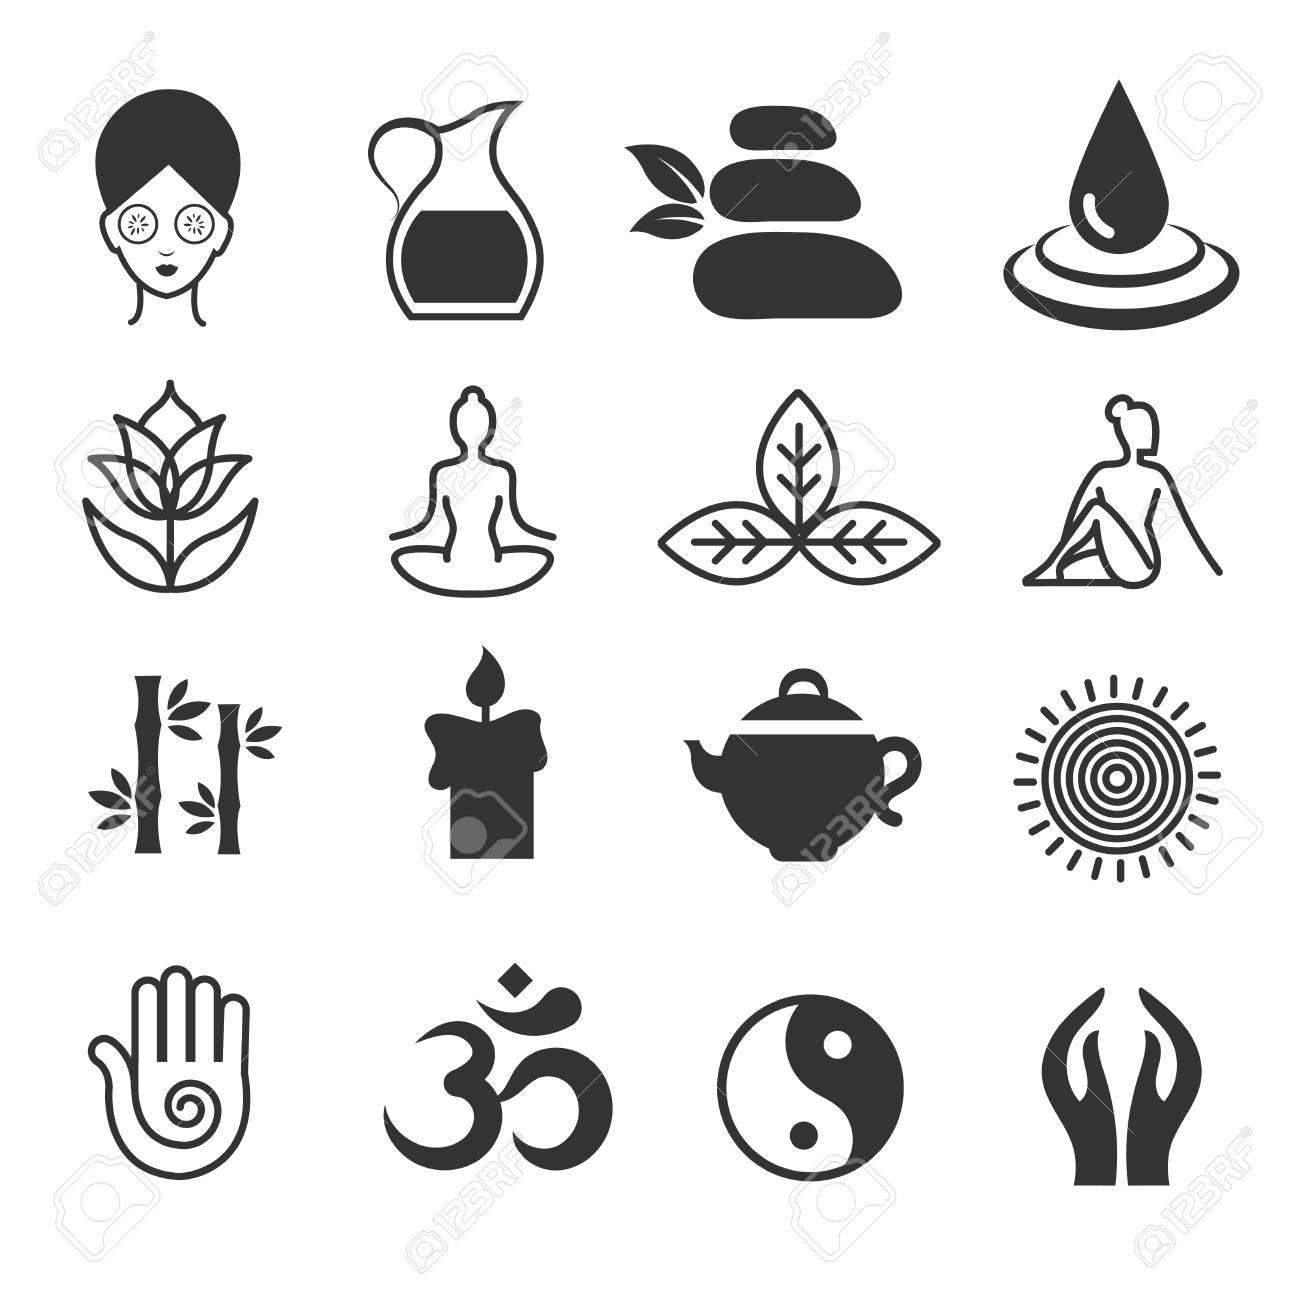 Relax Icons Vector Yoga Health And Spa Symbols Zen Skin Care Royalty Free Cliparts Vectors And Stock Illustration Image 70951195